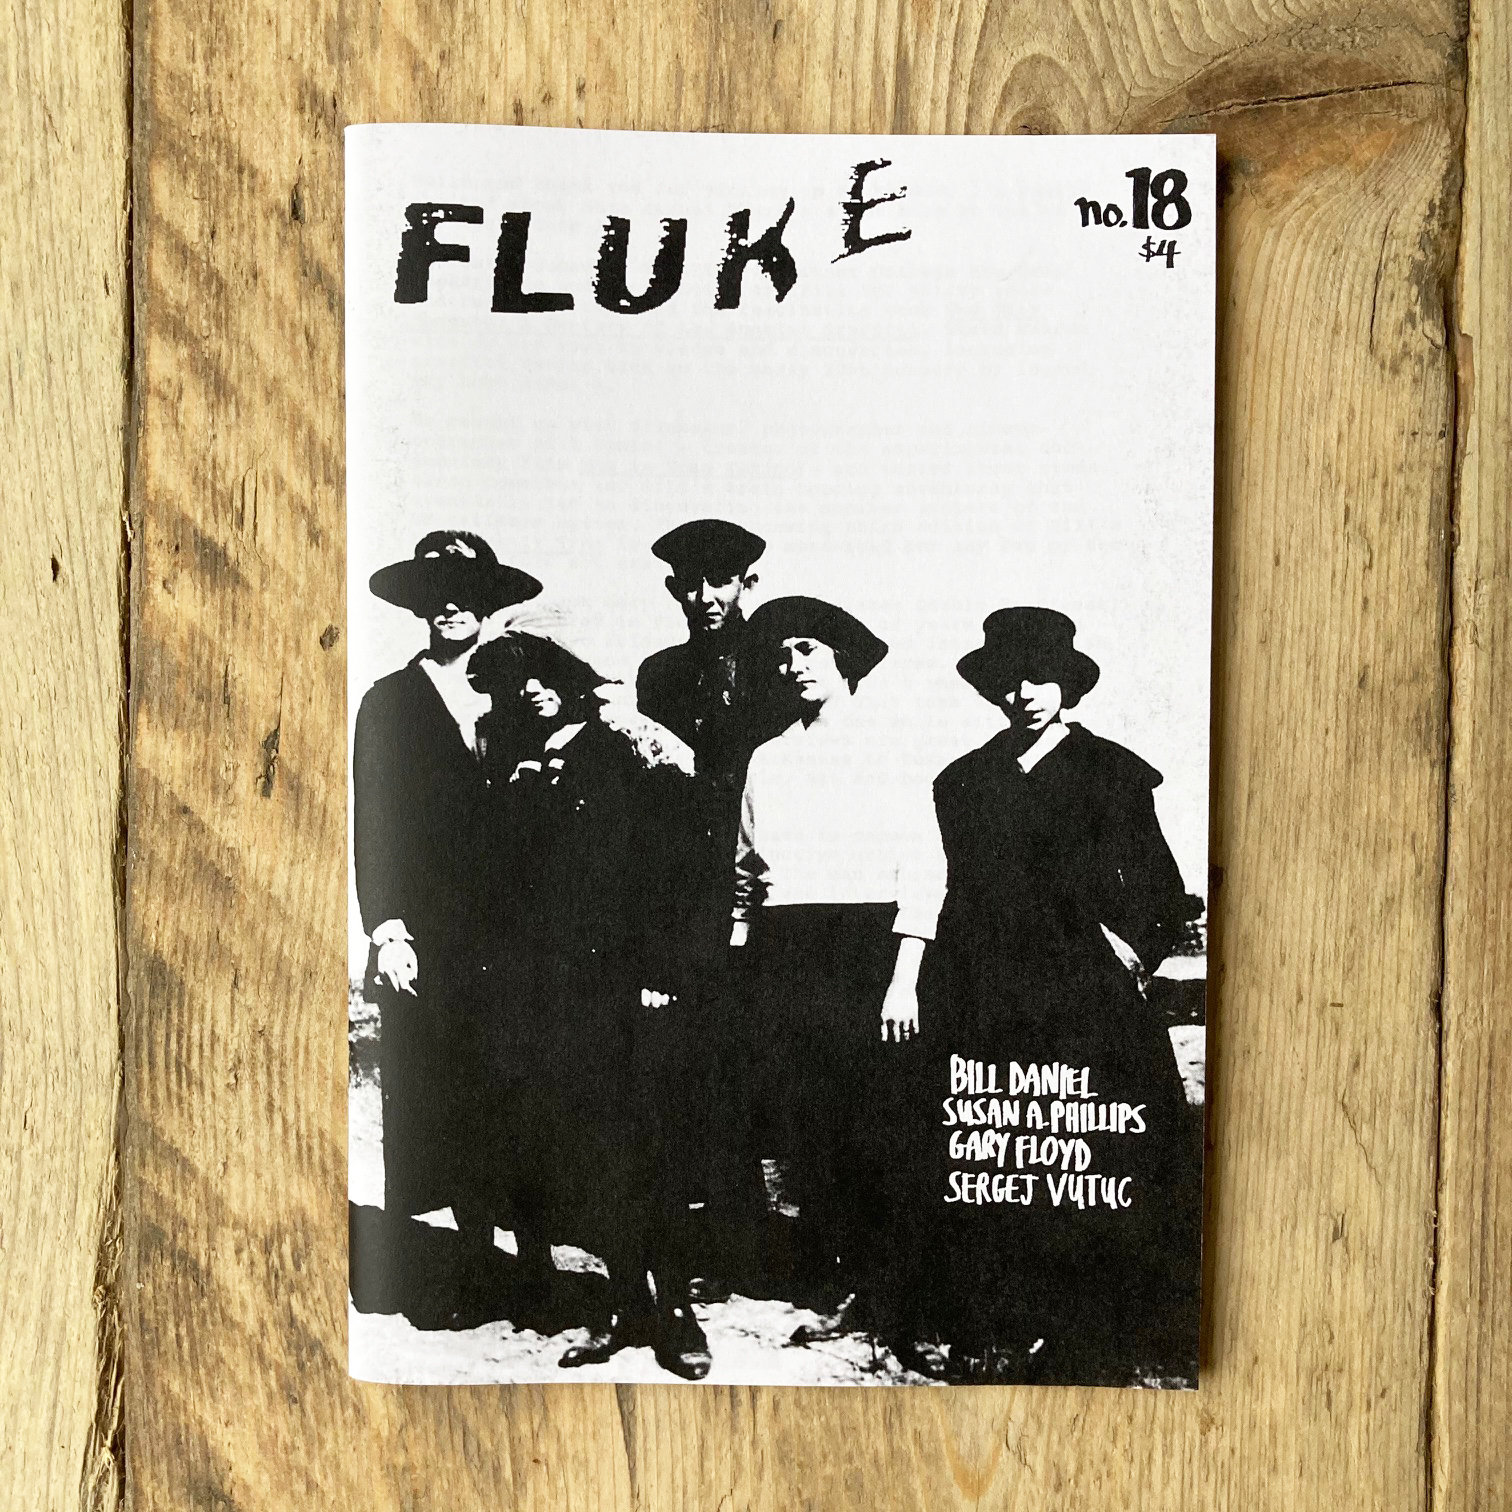 Fluke Fanzine #18: Outsider Art & back issues